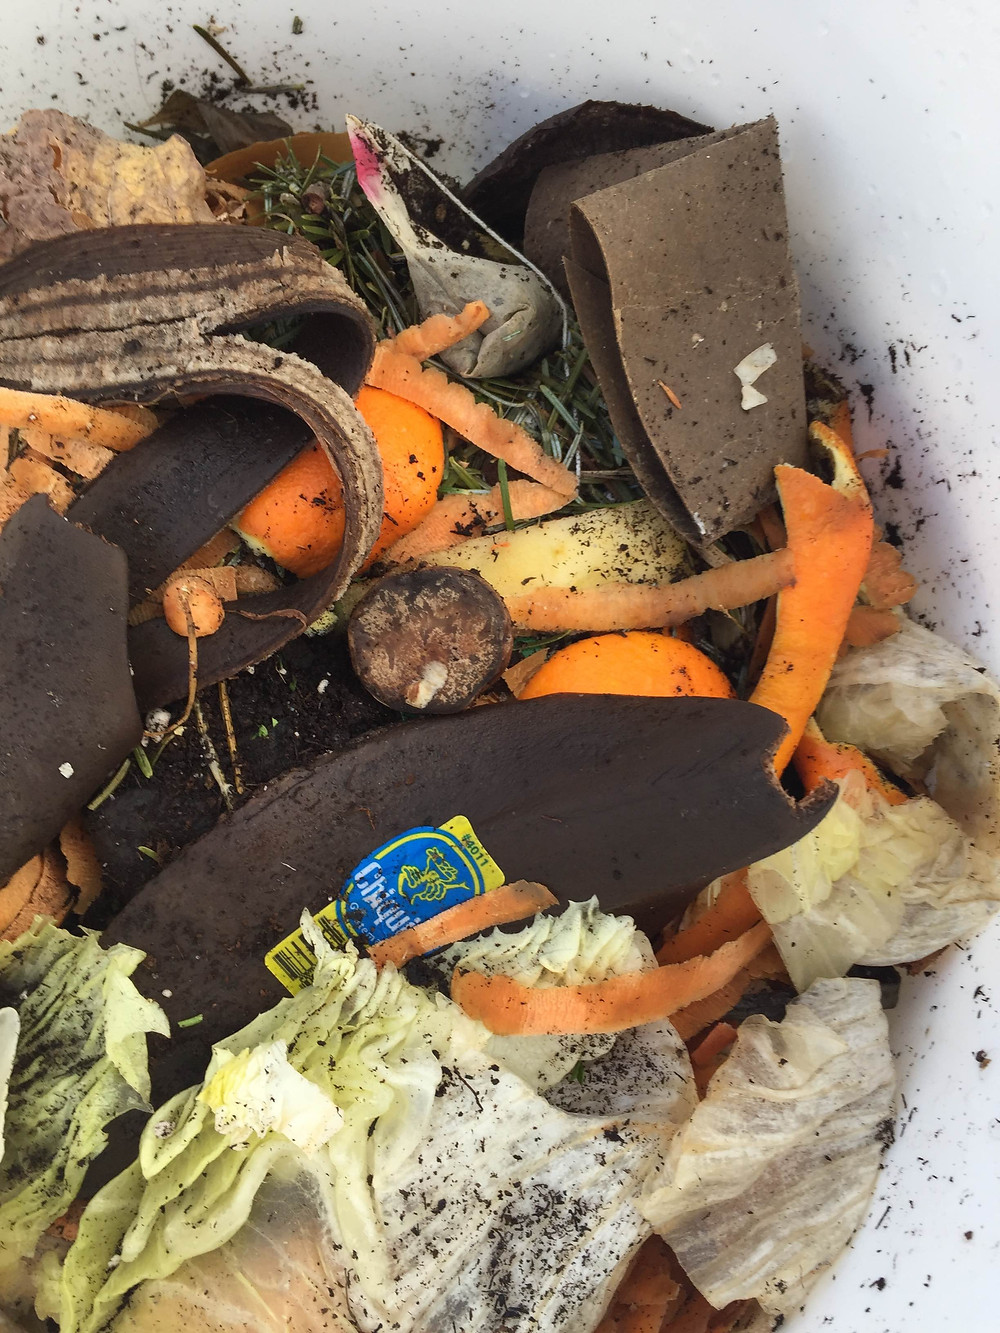 Compostable food waste, including a banana peel with a non-compostable sticker